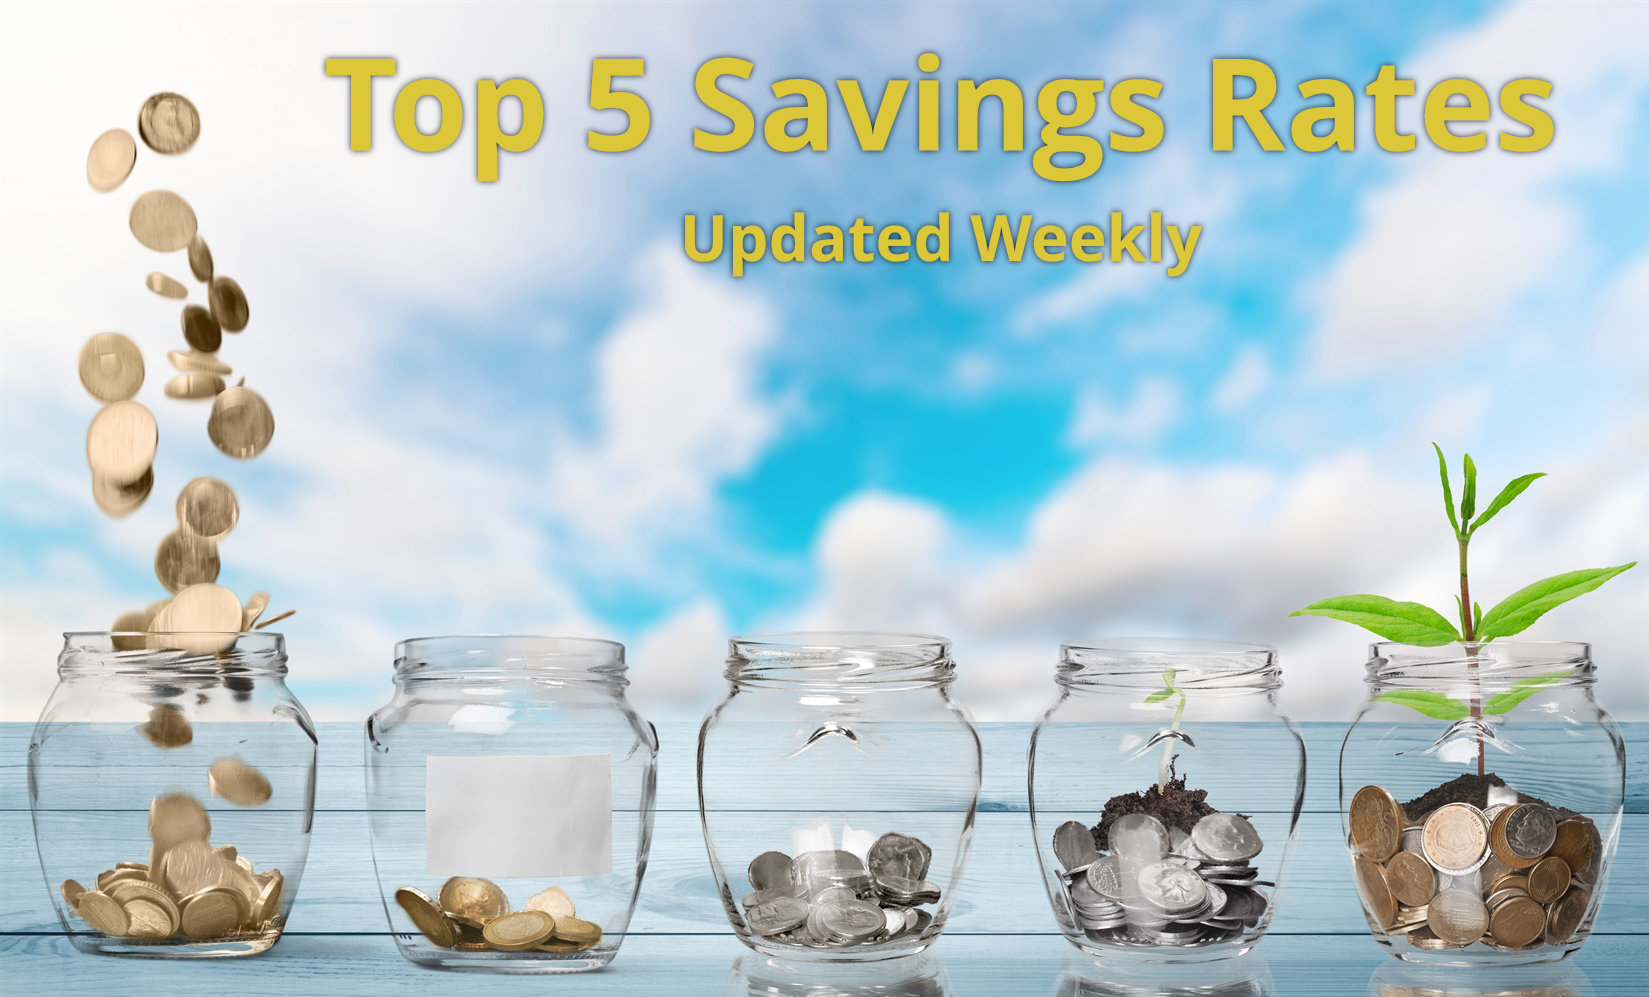 Top 5 UK Savings Rates